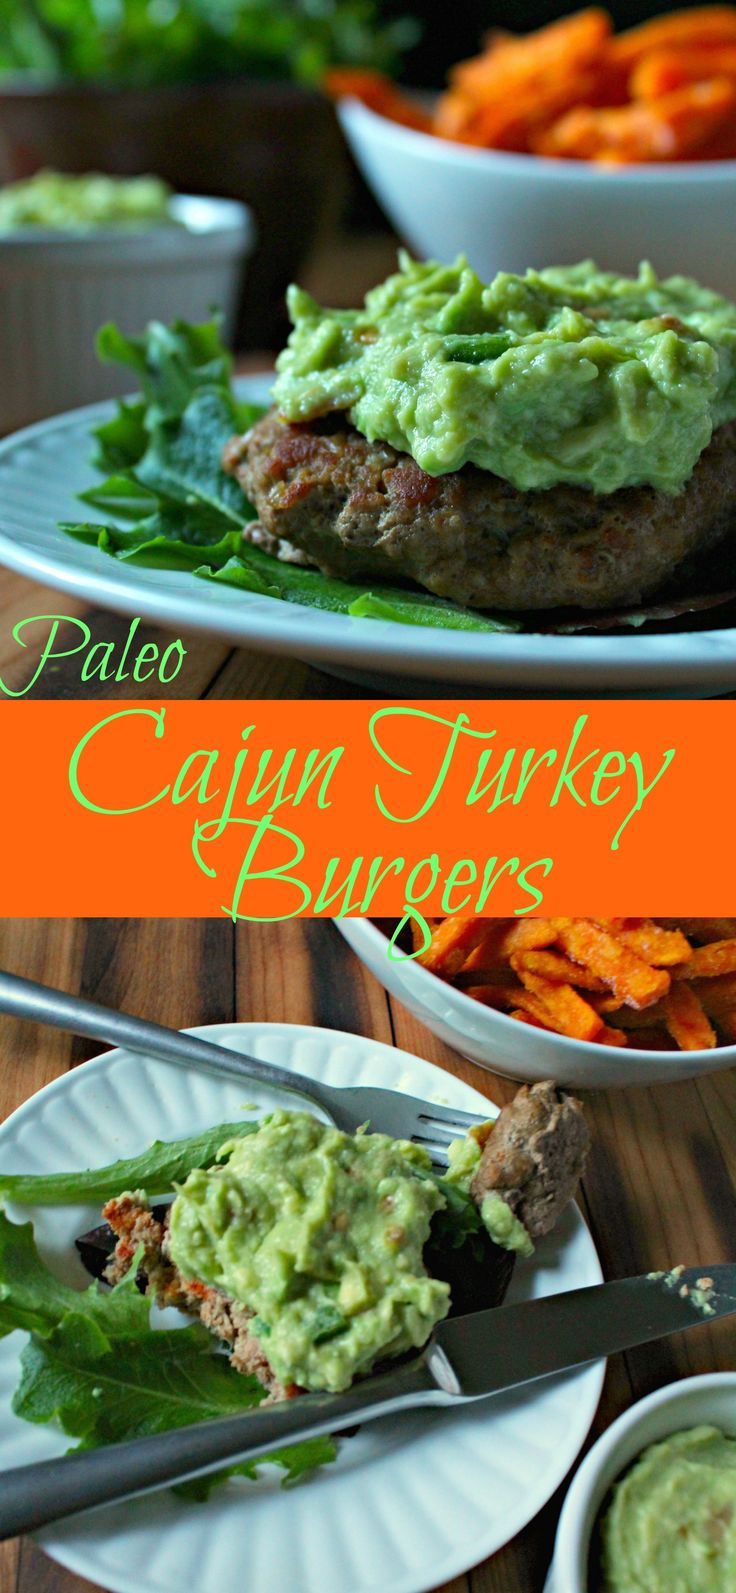 Paleo Cajun Turkey Burgers with Guacamole makes me dream of warmer weather and grilling out!